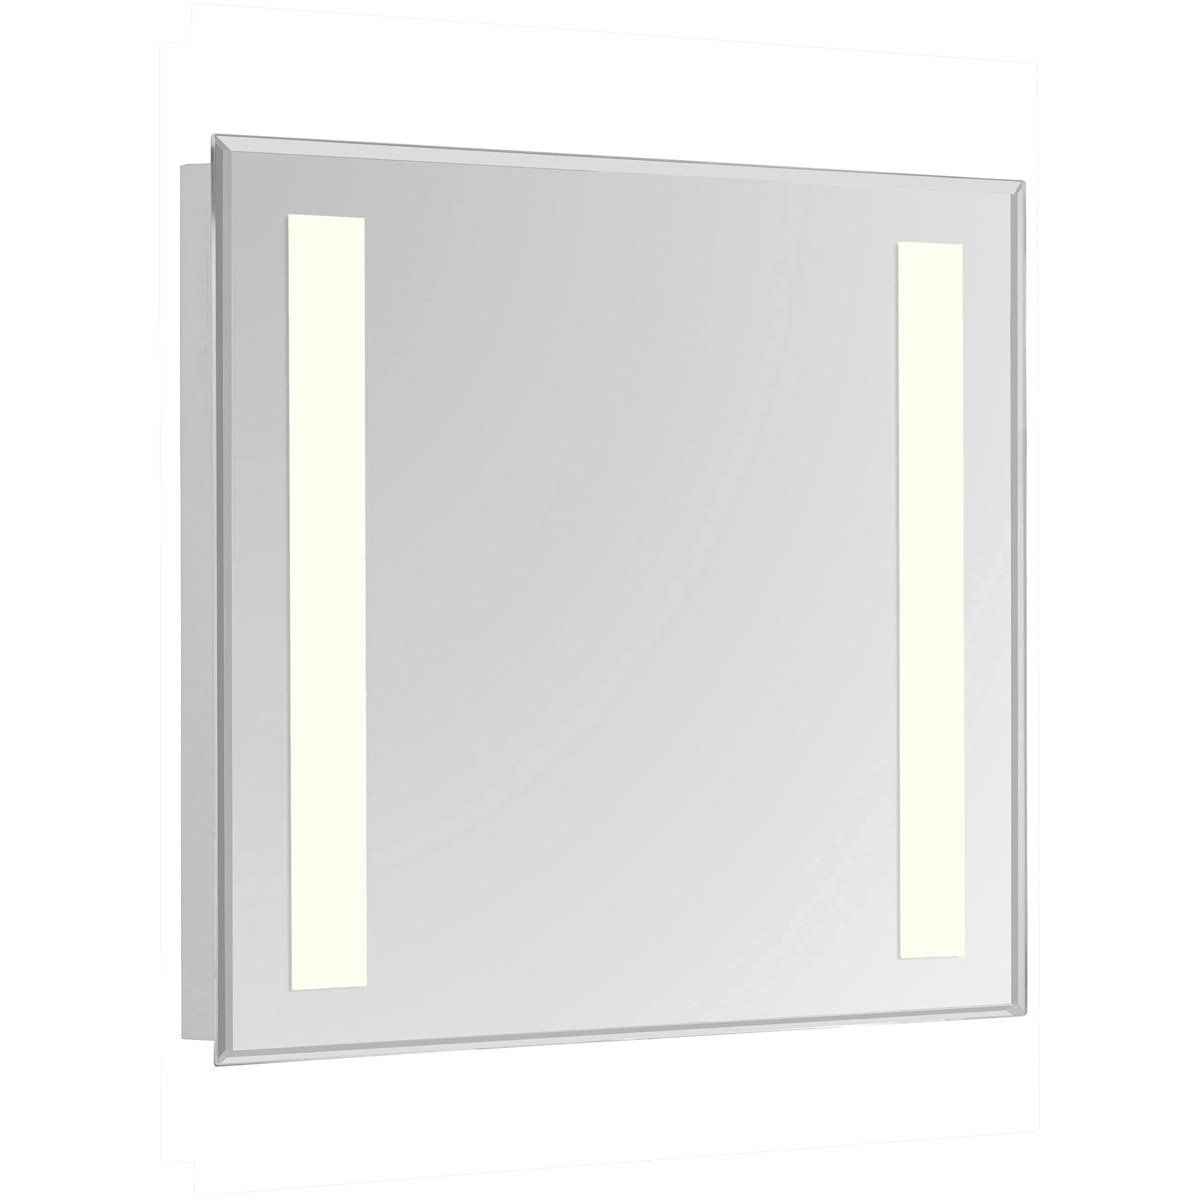 Nova 30 X 20 Hardwired Glossy White Led Wall Mirror (Mre-6311) Led Mirror